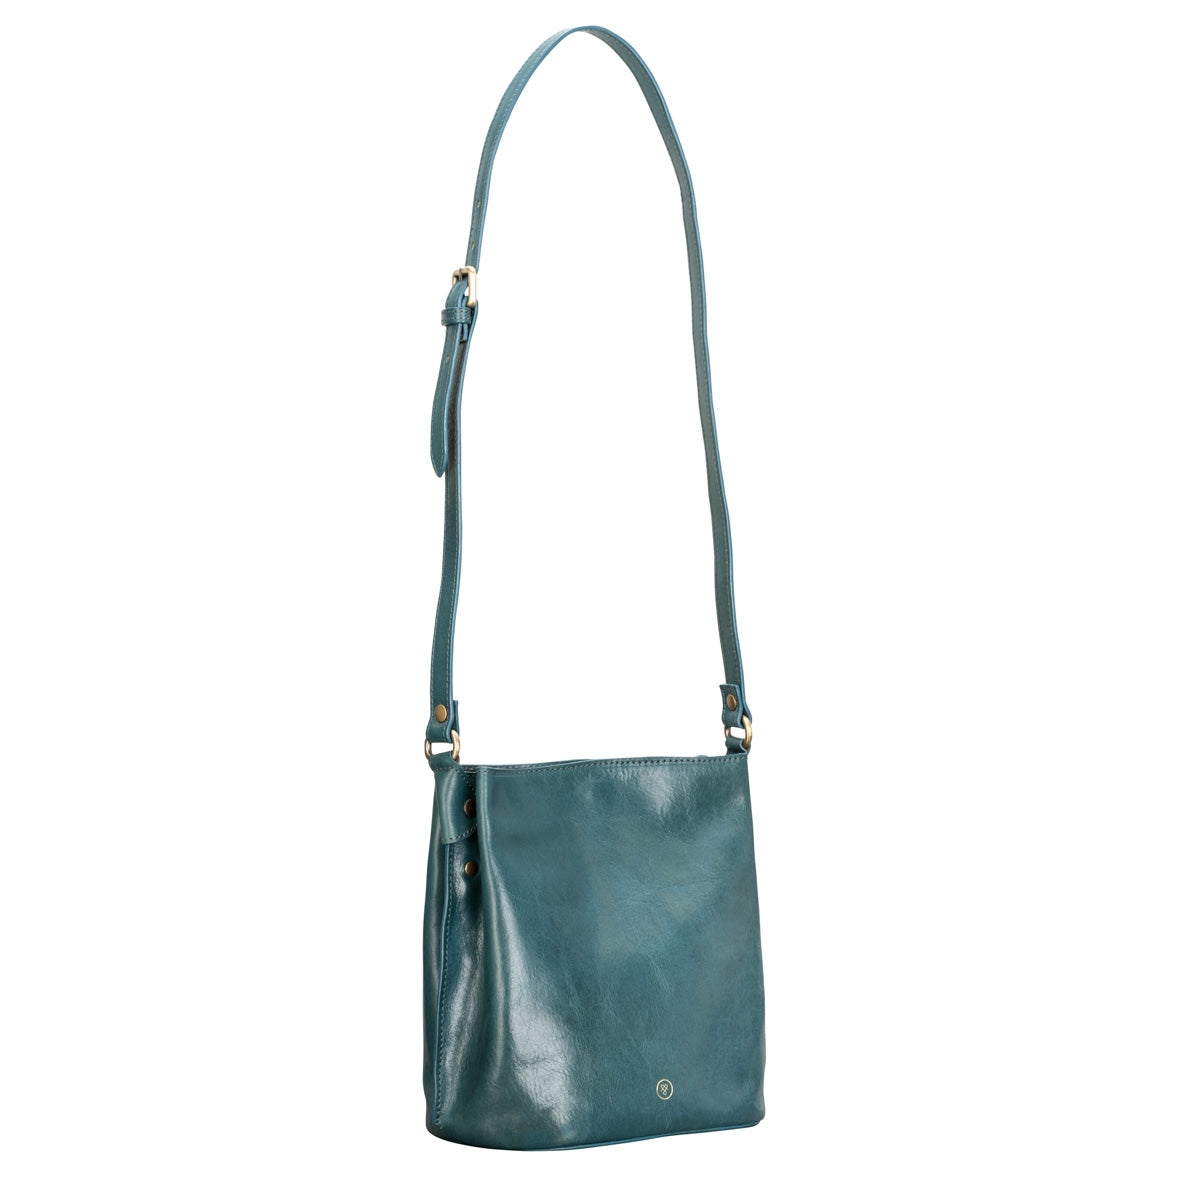 Image 2 of the 'Palermo' Petrol Leather Ladies Bucket Bag Handbag